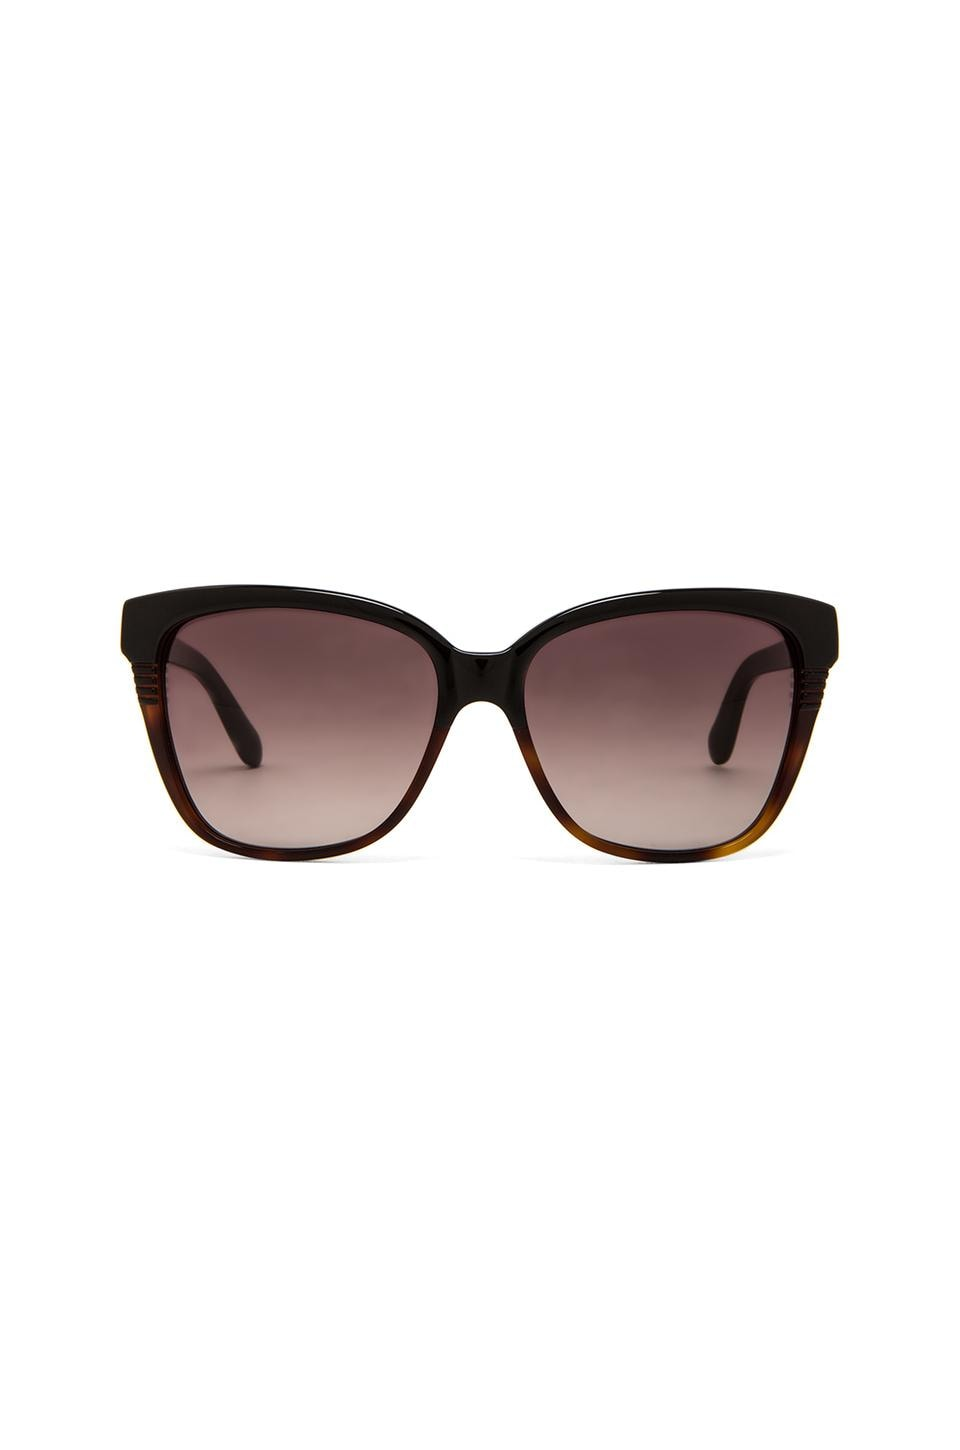 Marc by Marc Jacobs Classic Square Sunglasses in Black Dark Tortoise